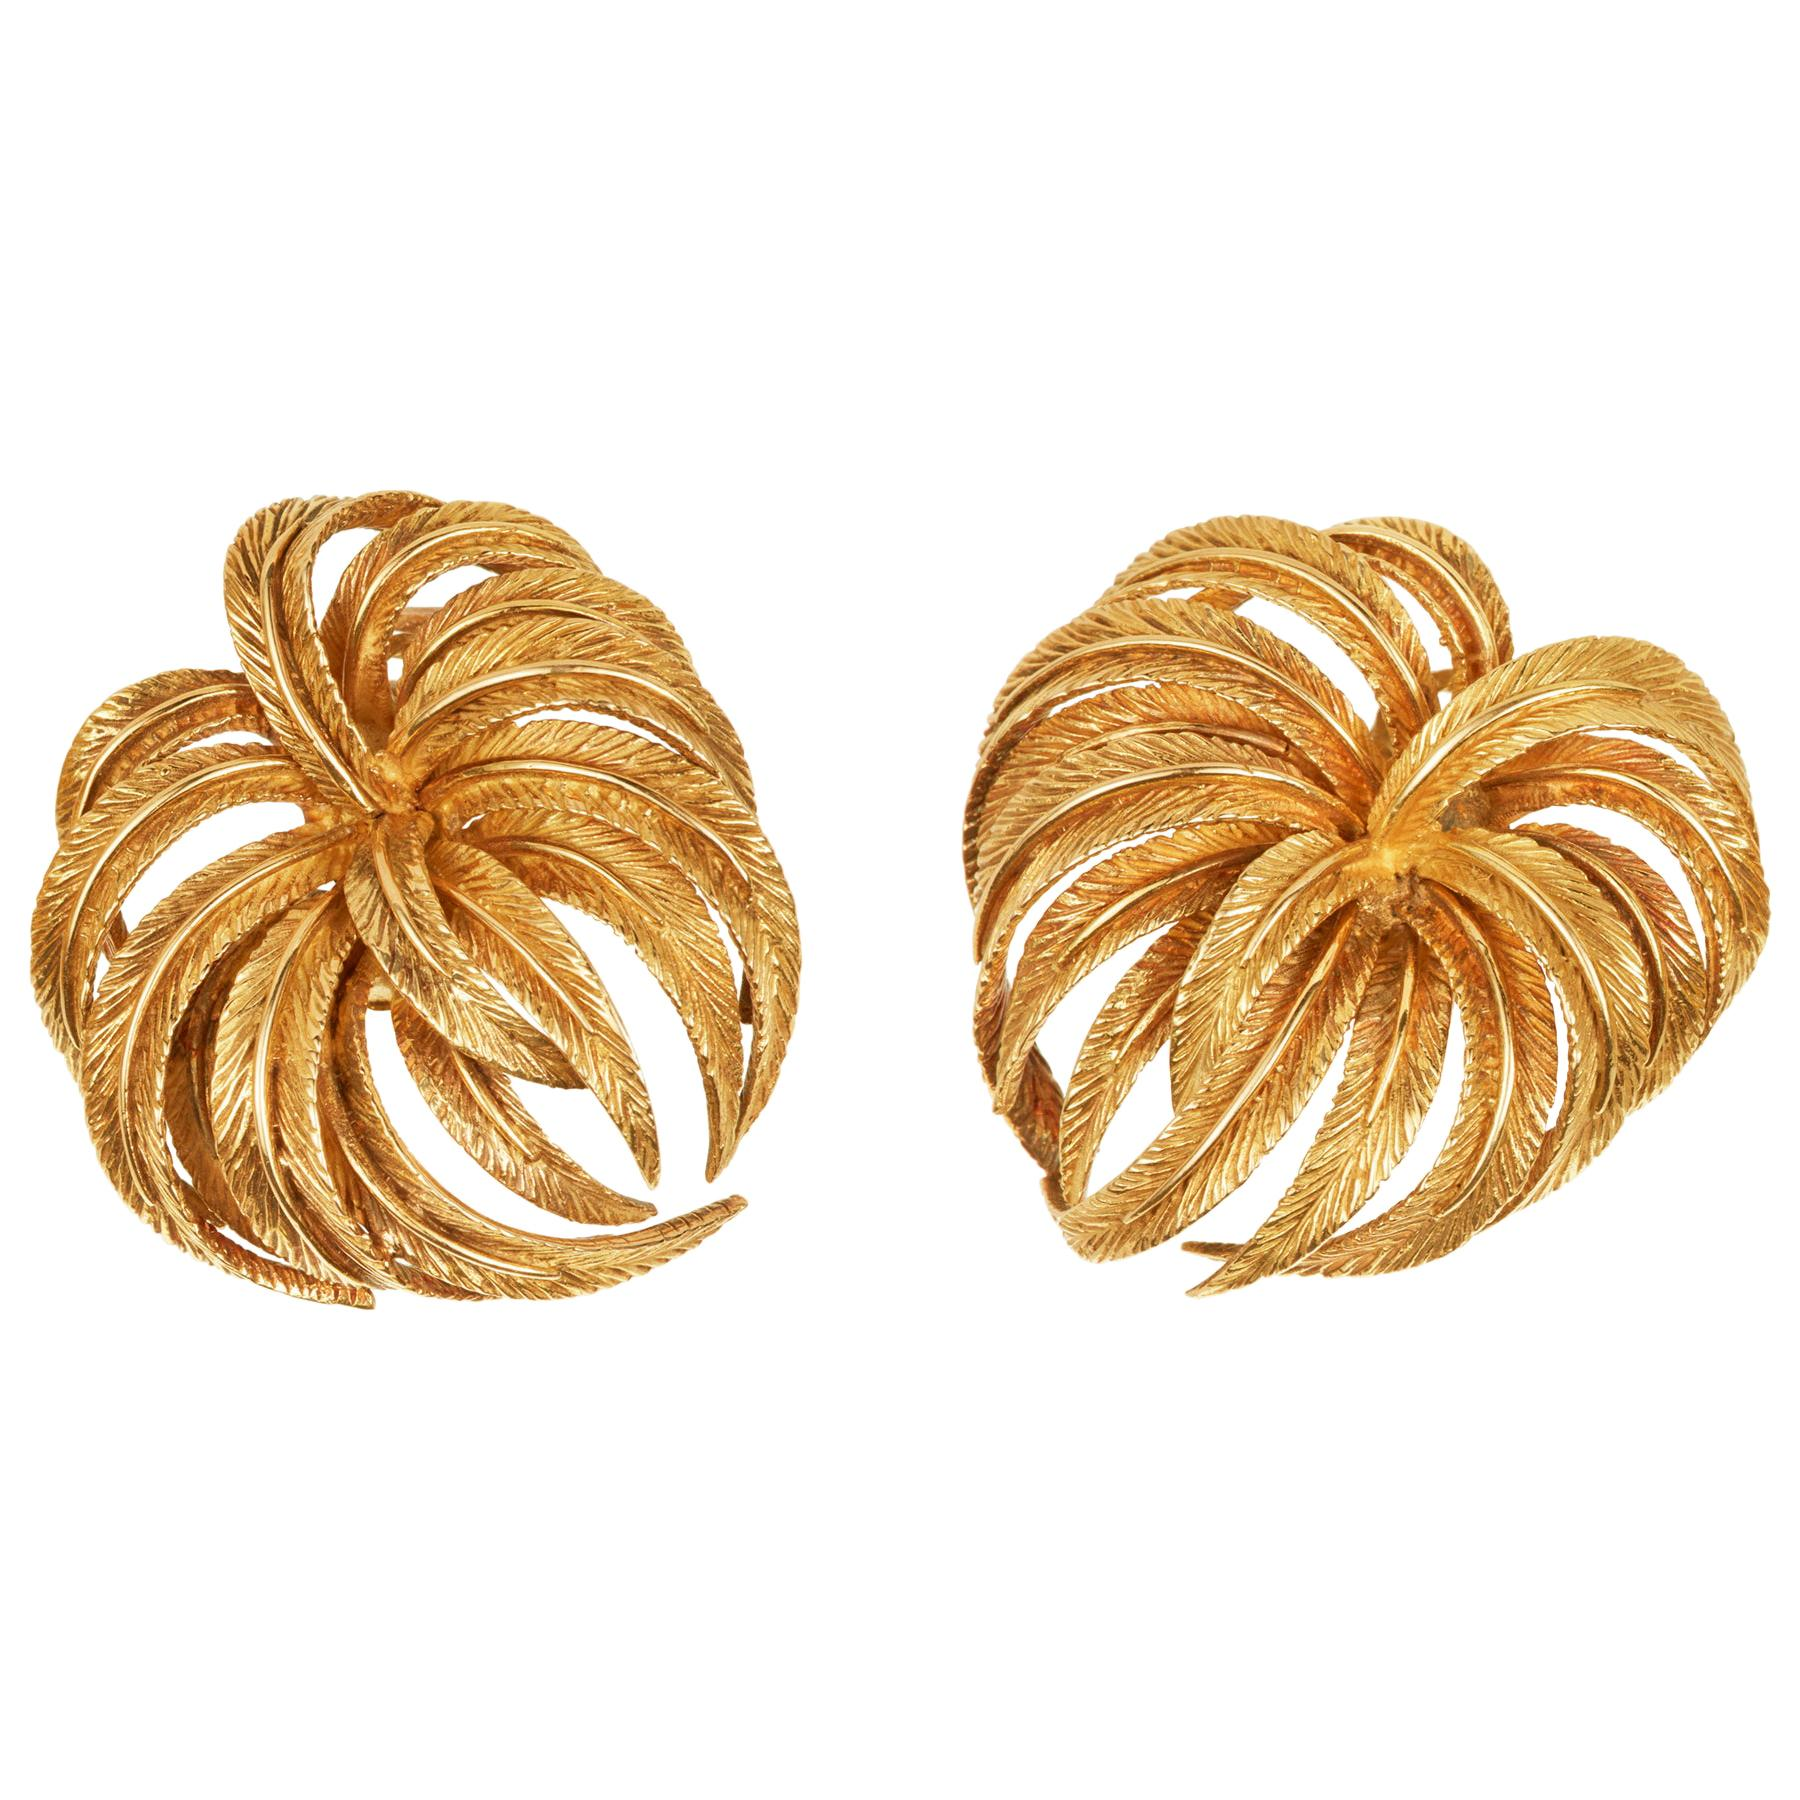 Clip back Earrings in 18K Yellow Gold with Palm Leaf Motif, Hand Made